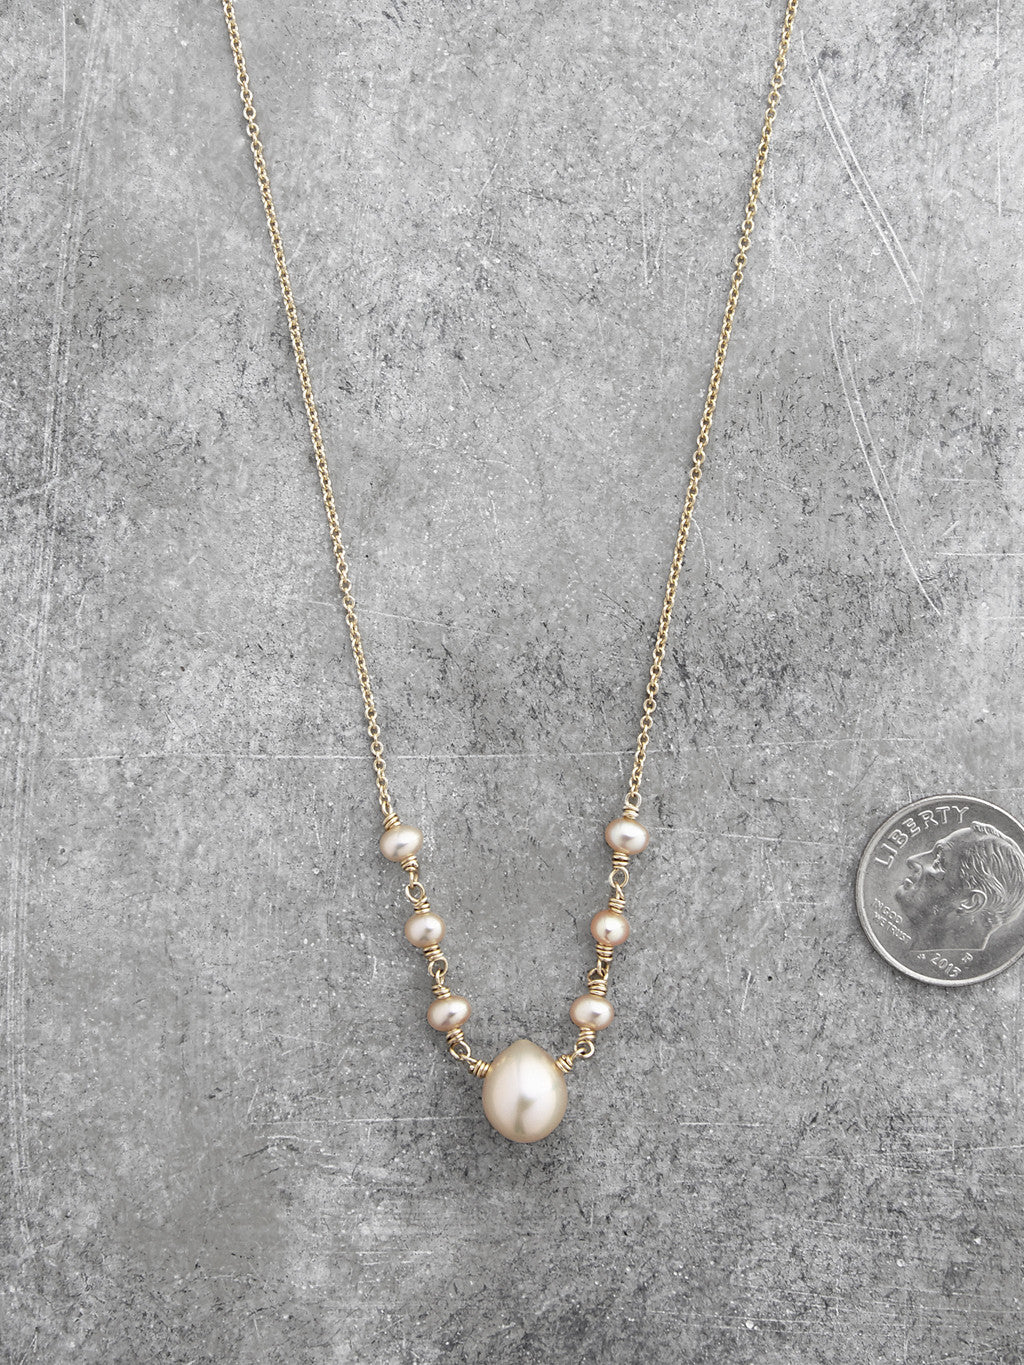 Georgia Freshwater Pearl Teardrop Necklace2